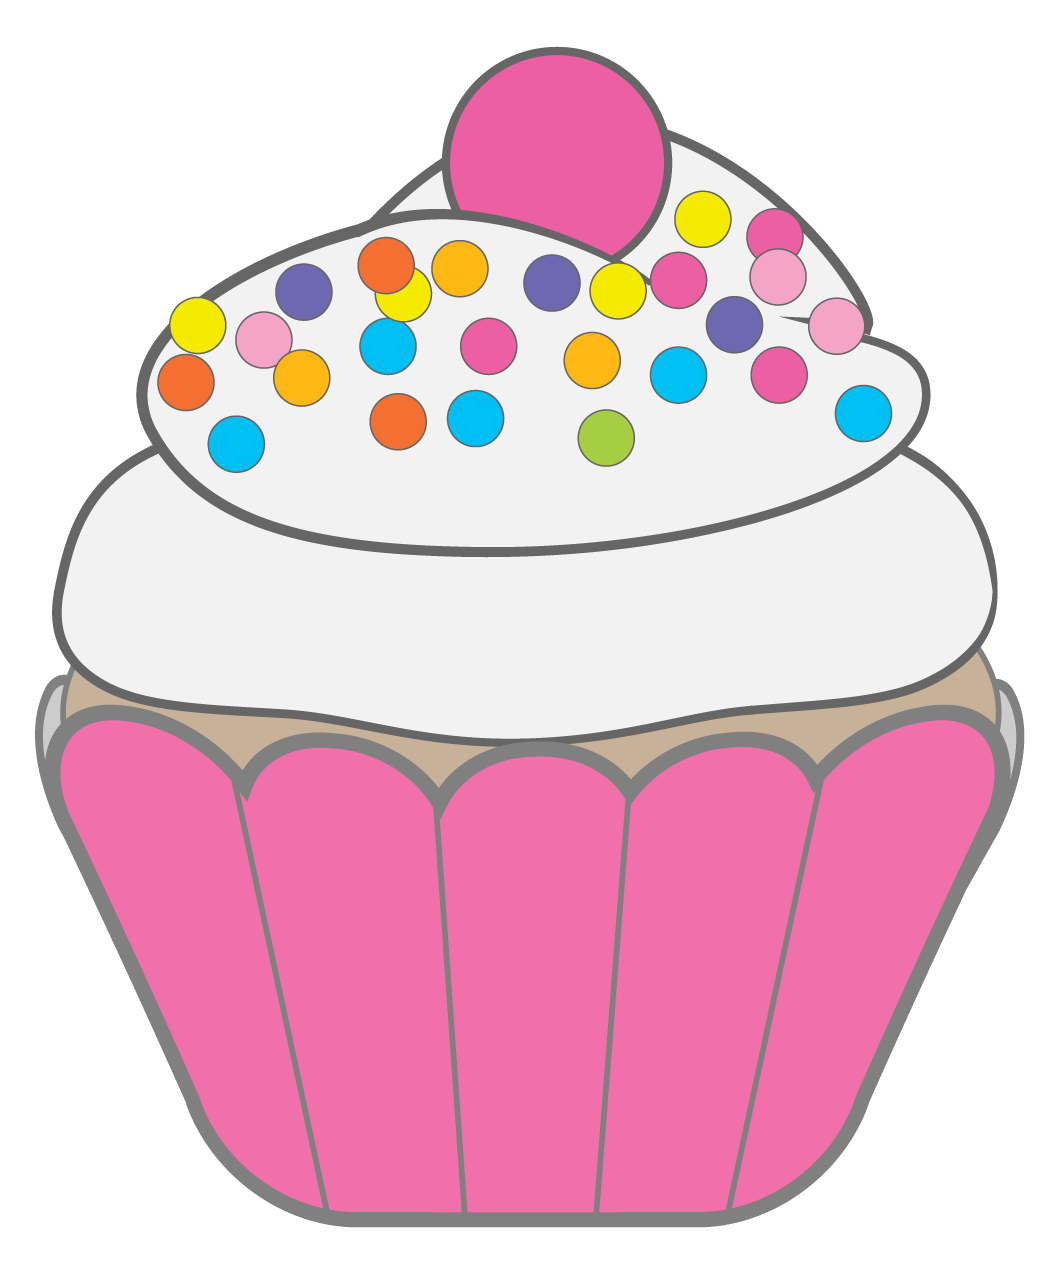 Cake clip art free graphic transparent download Cupcake Clipart Free Download | Clipart Panda - Free Clipart Images graphic transparent download